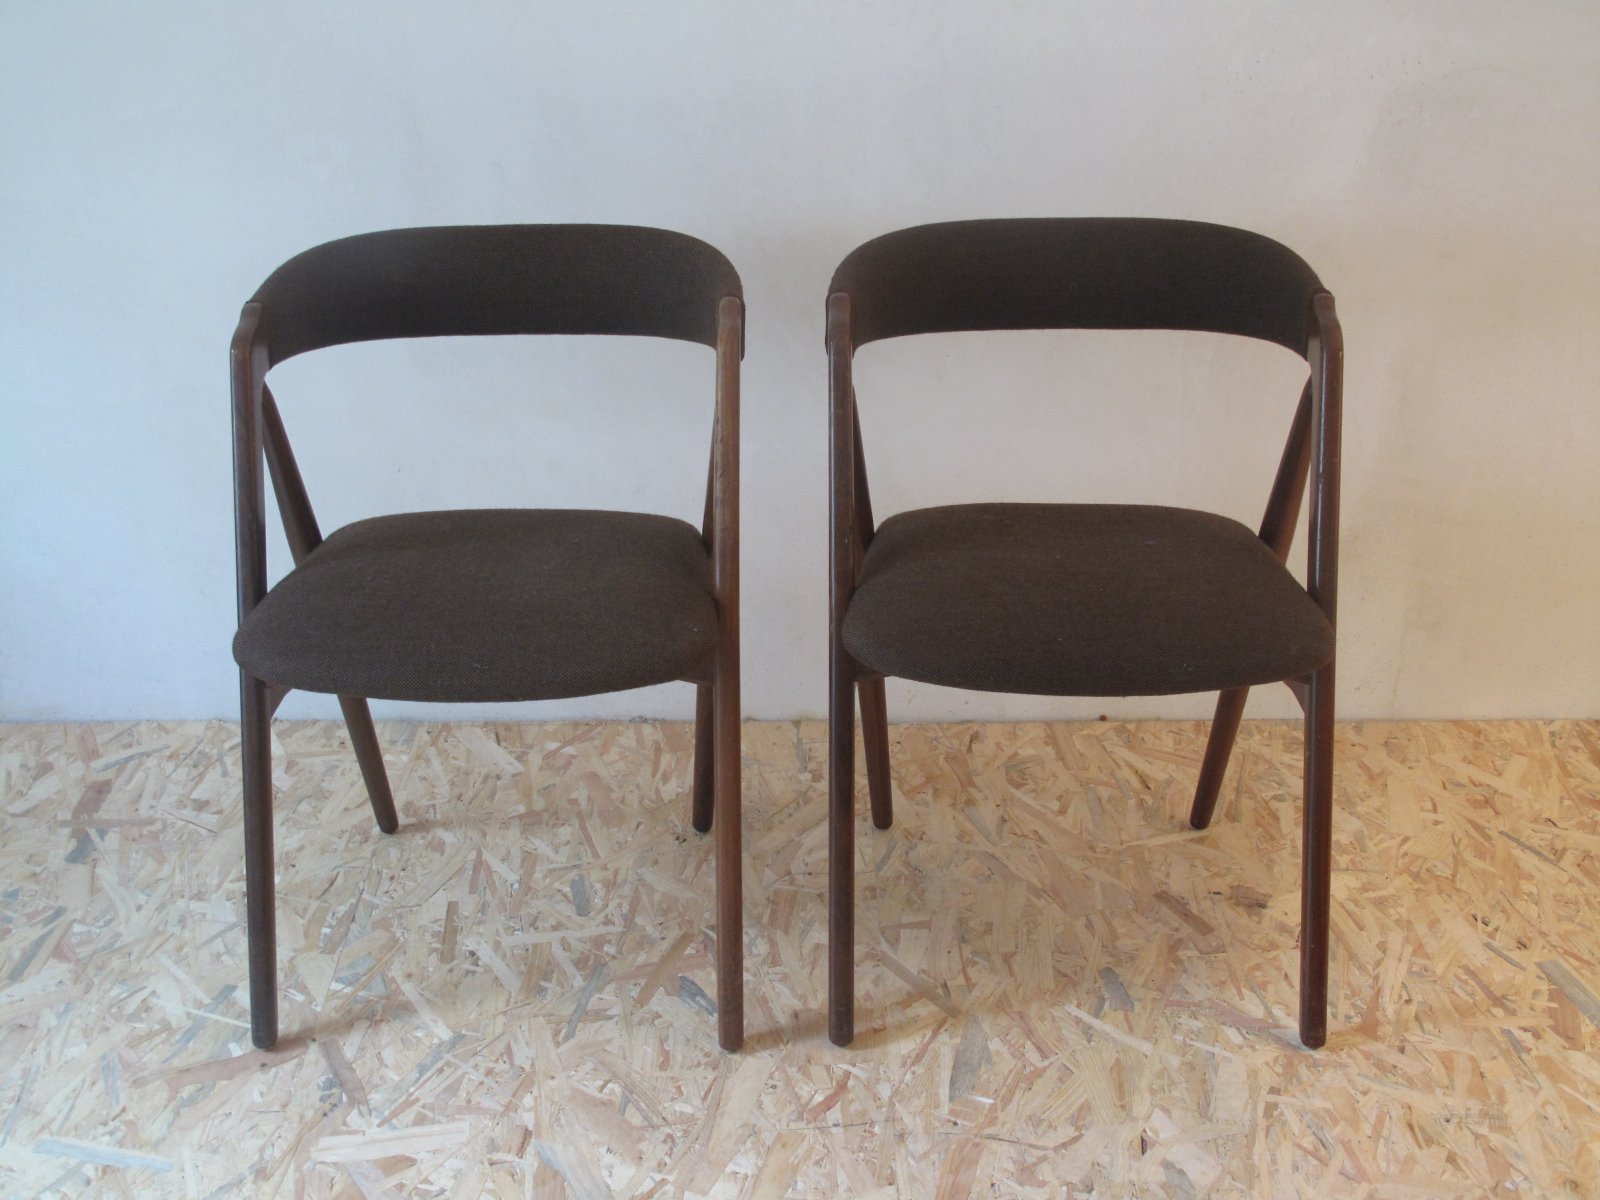 Dining chairs by kai kristiansen 1960s set of 2 for sale at pamono - Kai kristiansen chairs ...